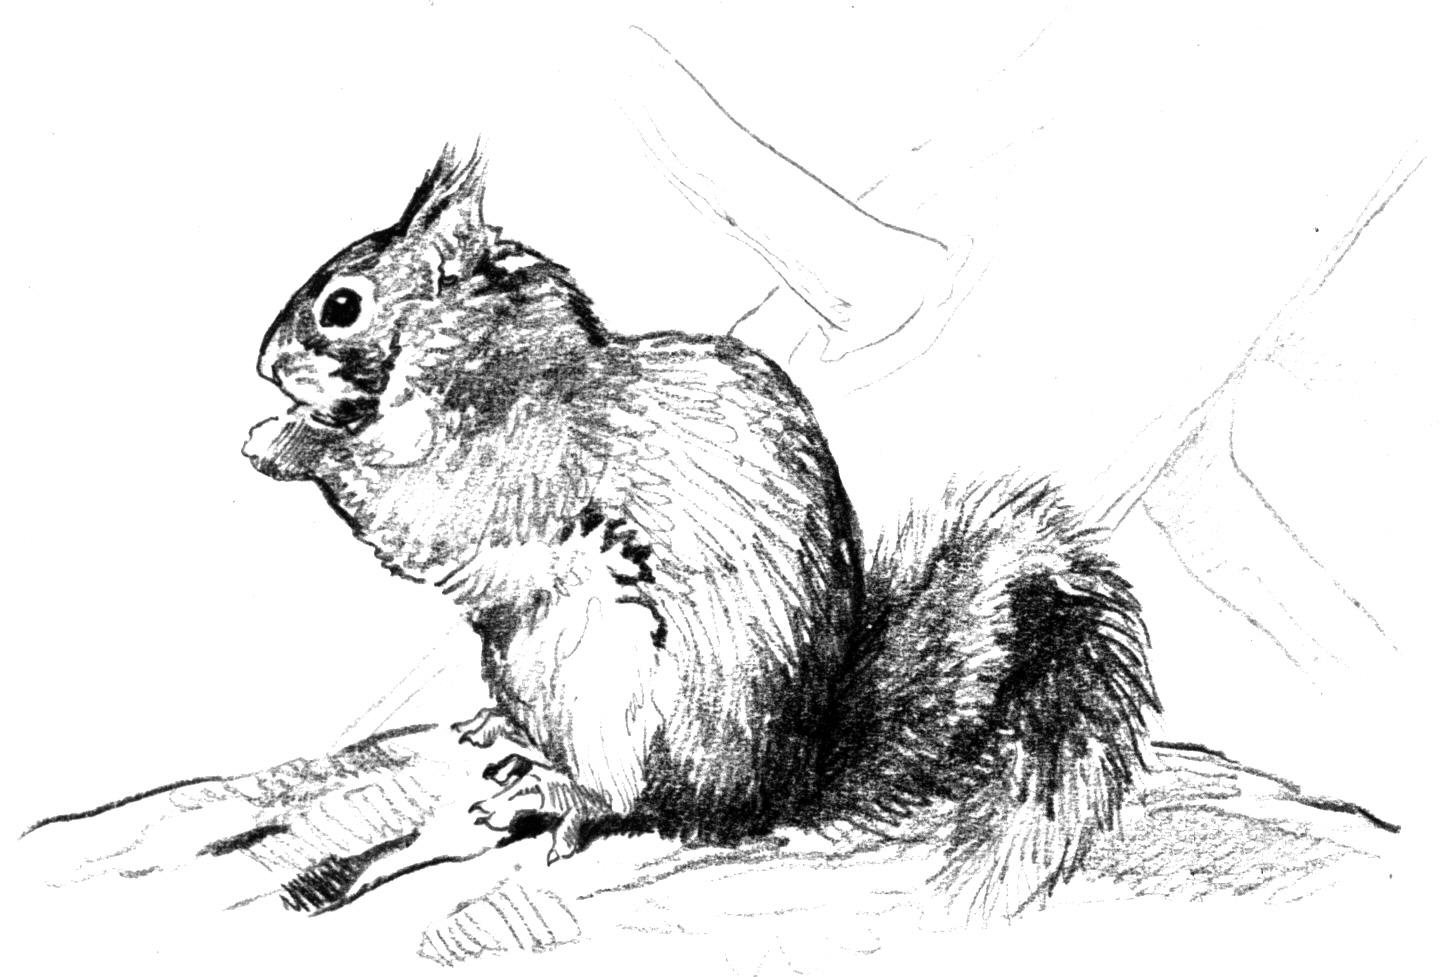 coloring pages of squirrels squirrel coloring pages of pages squirrels coloring